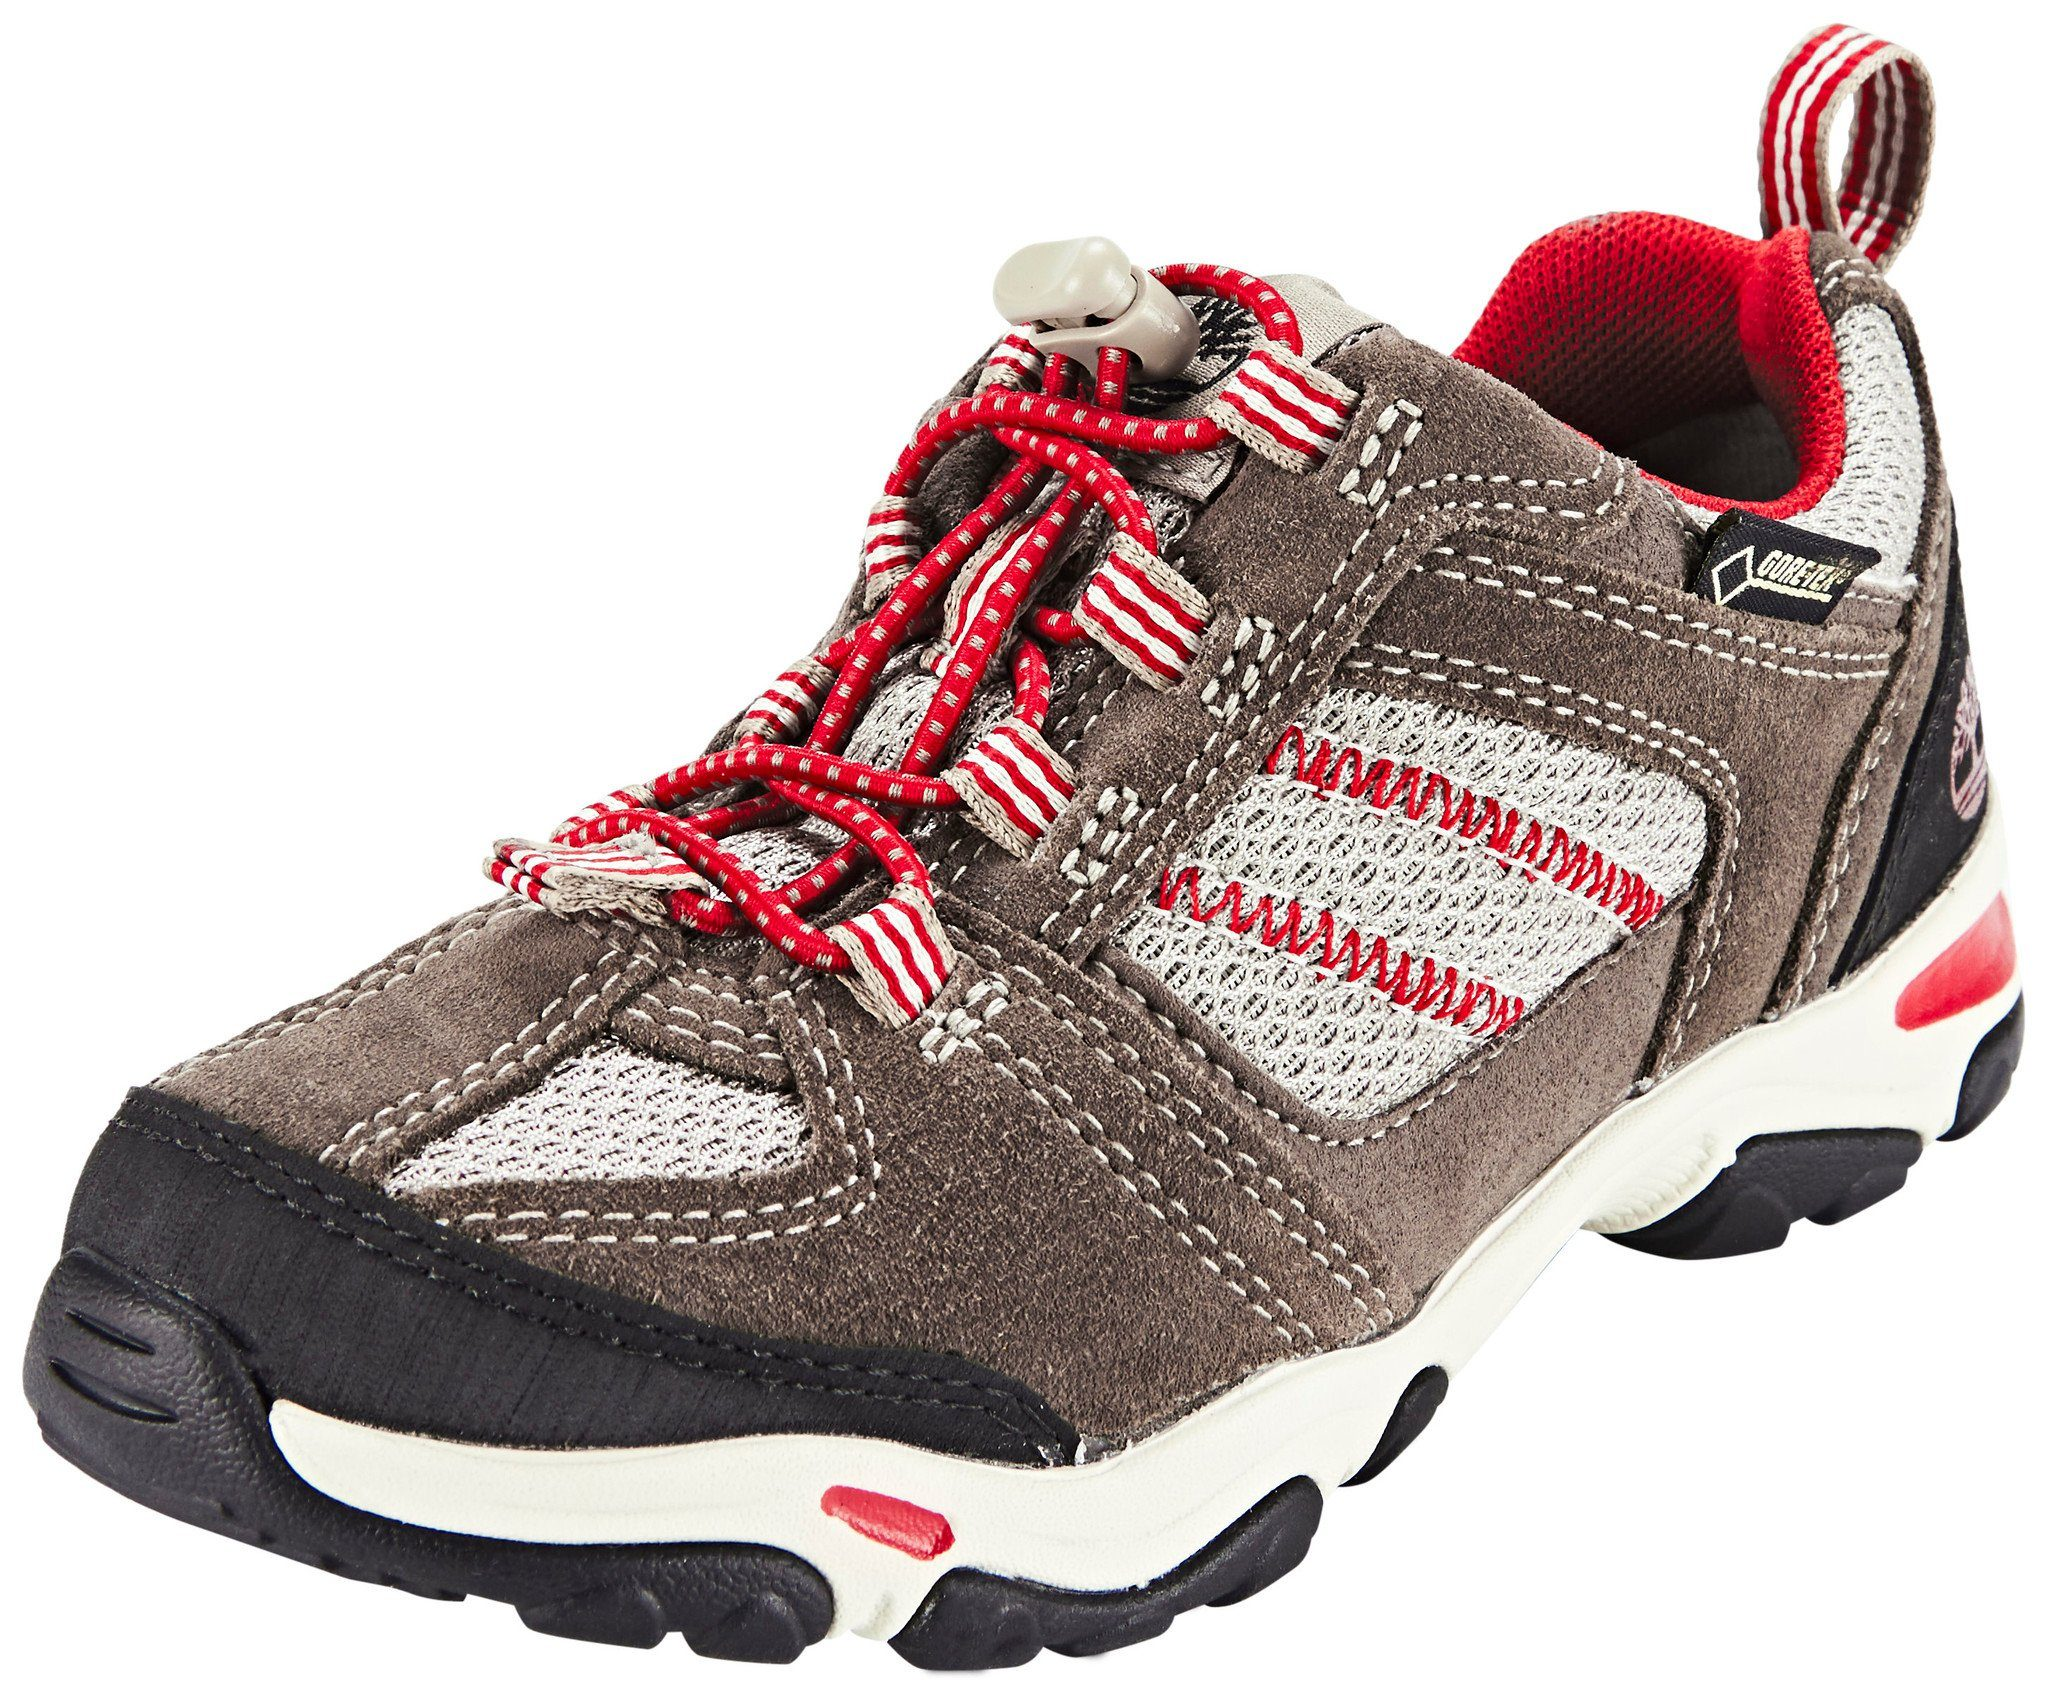 TIMBERLAND Kletterschuh »Trail Force F/L Shoes Youth GTX«